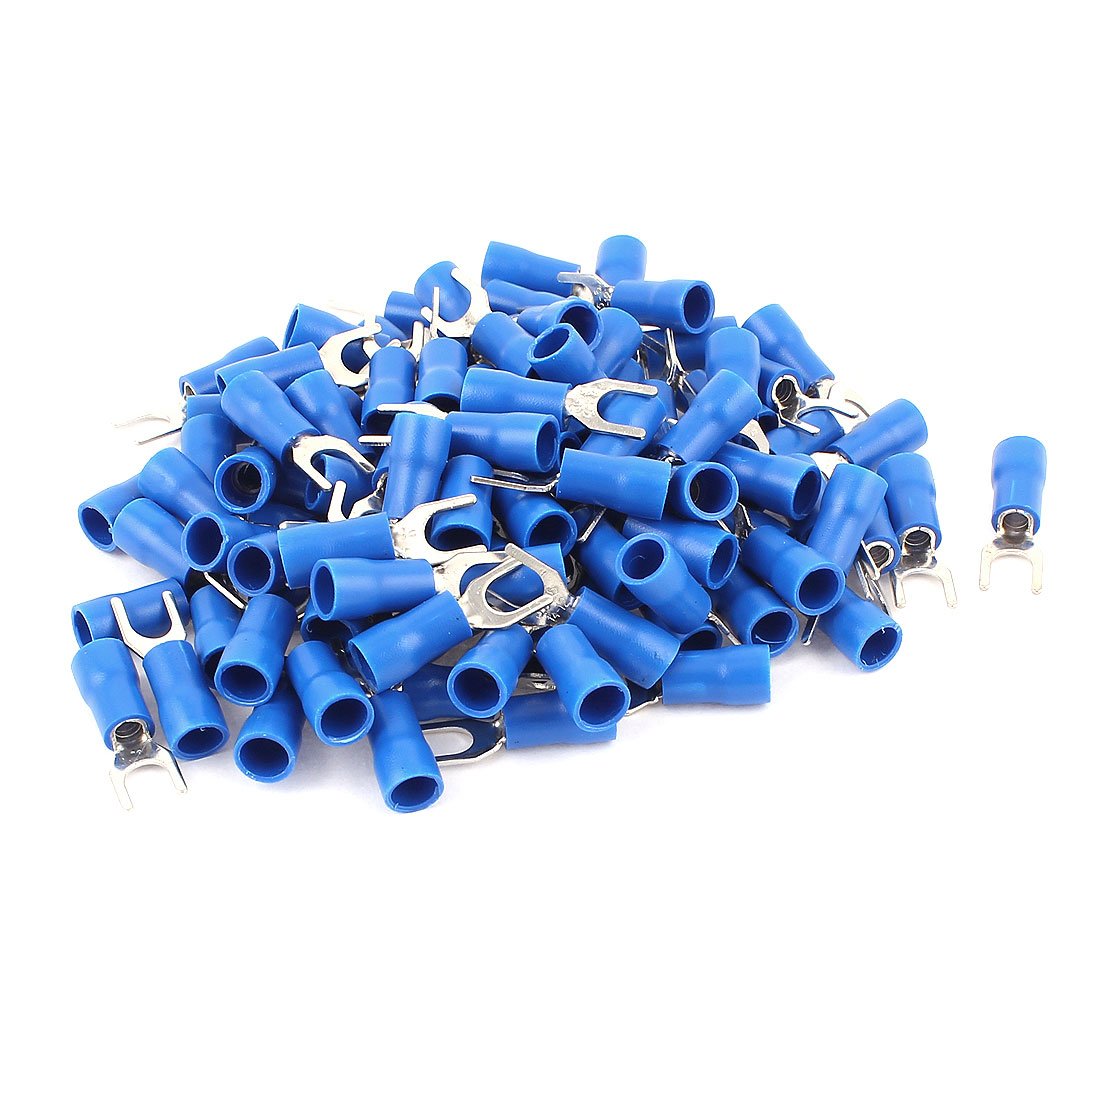 105Pcs Blue Electrical Crimp Wire Connector Insulated Fork Terminals 2.5-4mm2